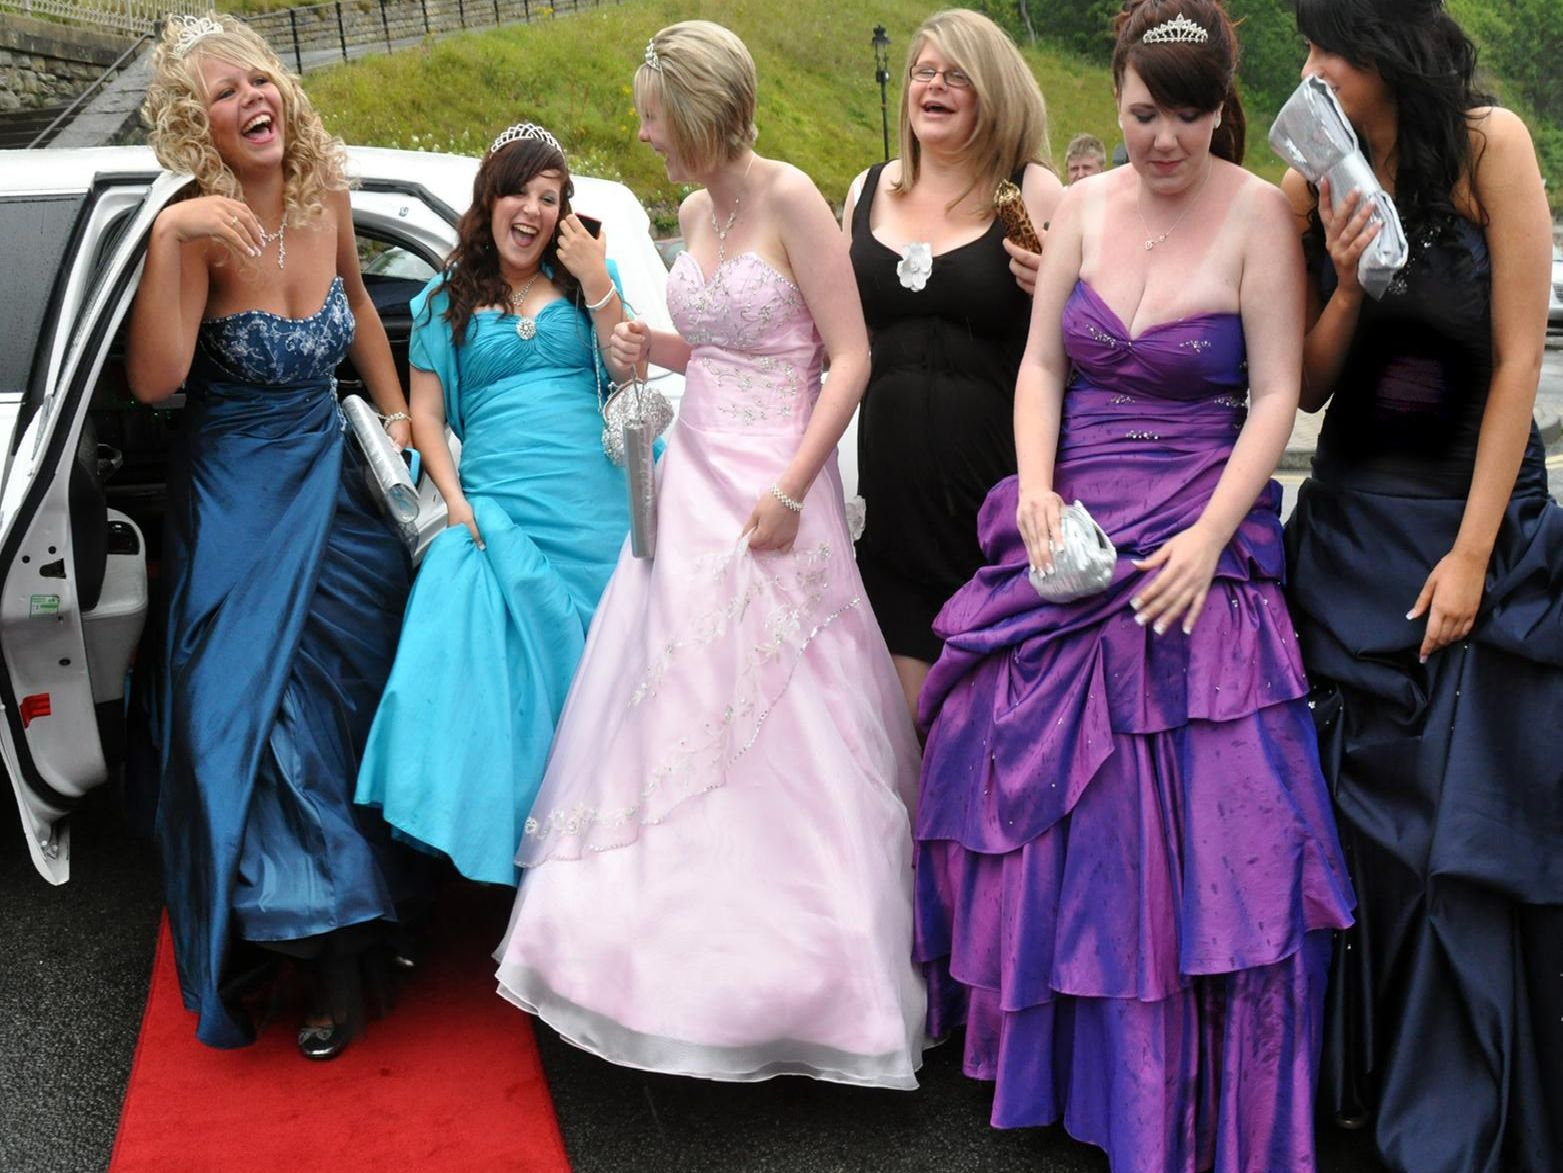 Party-goers arrived in a stretch limo.